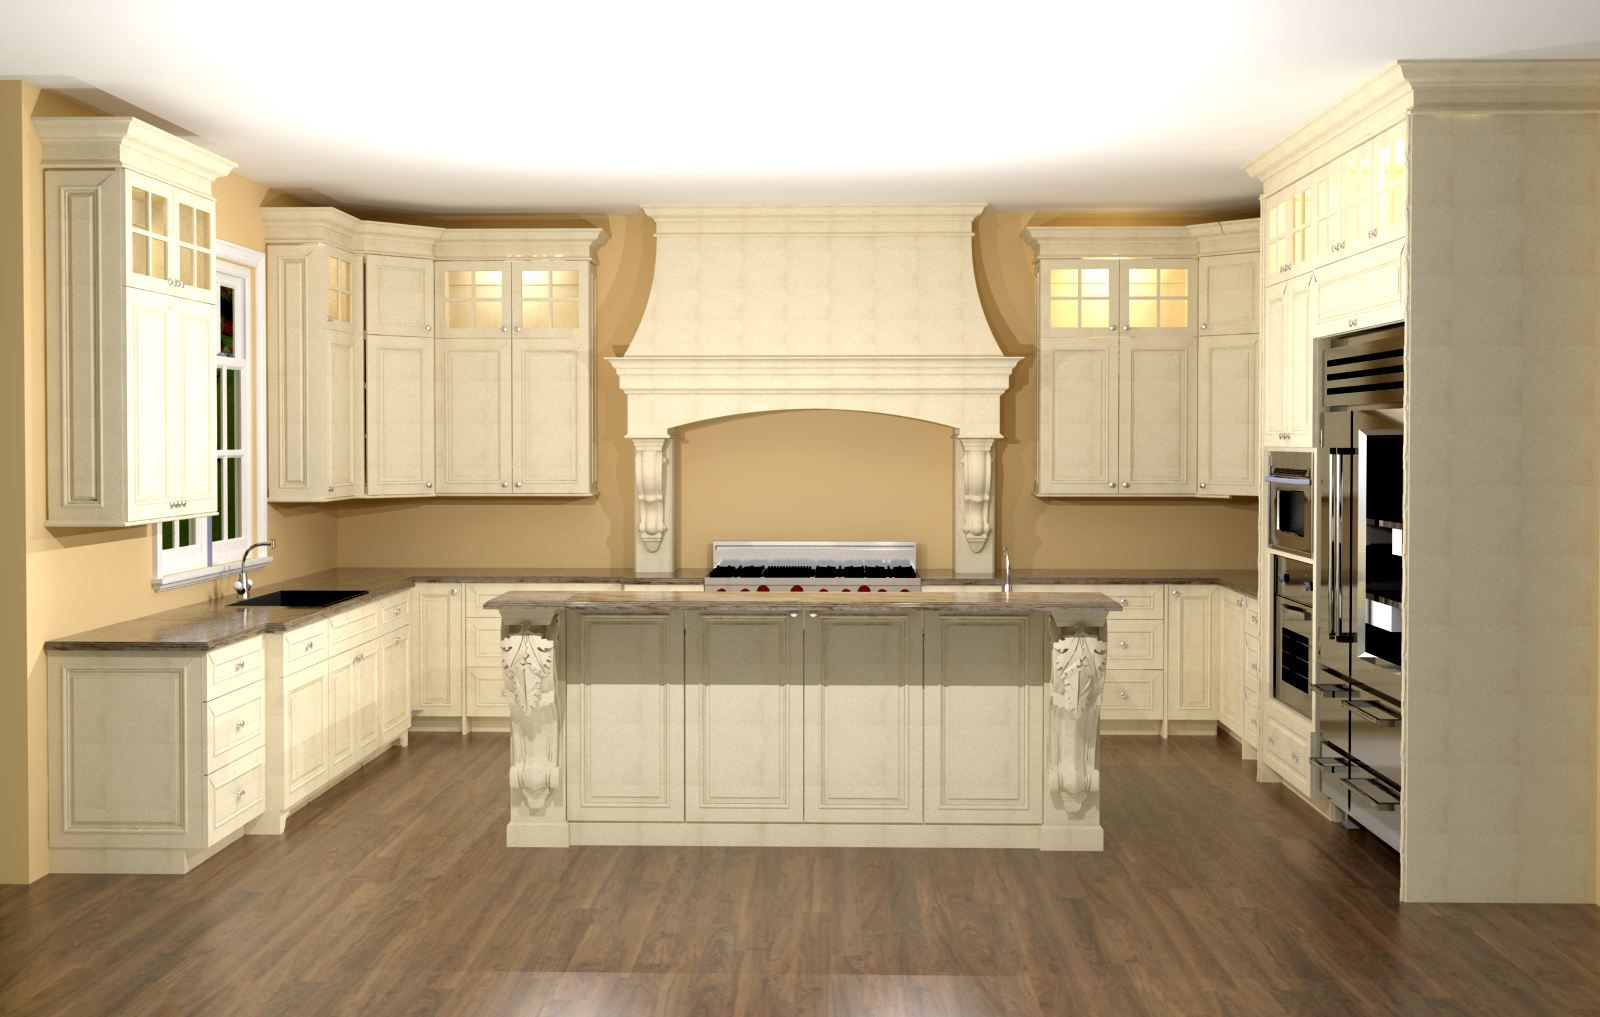 Kitchen Island Ideas For Large Kitchens large kitchen with custom hood. features large enkeboll corbels on